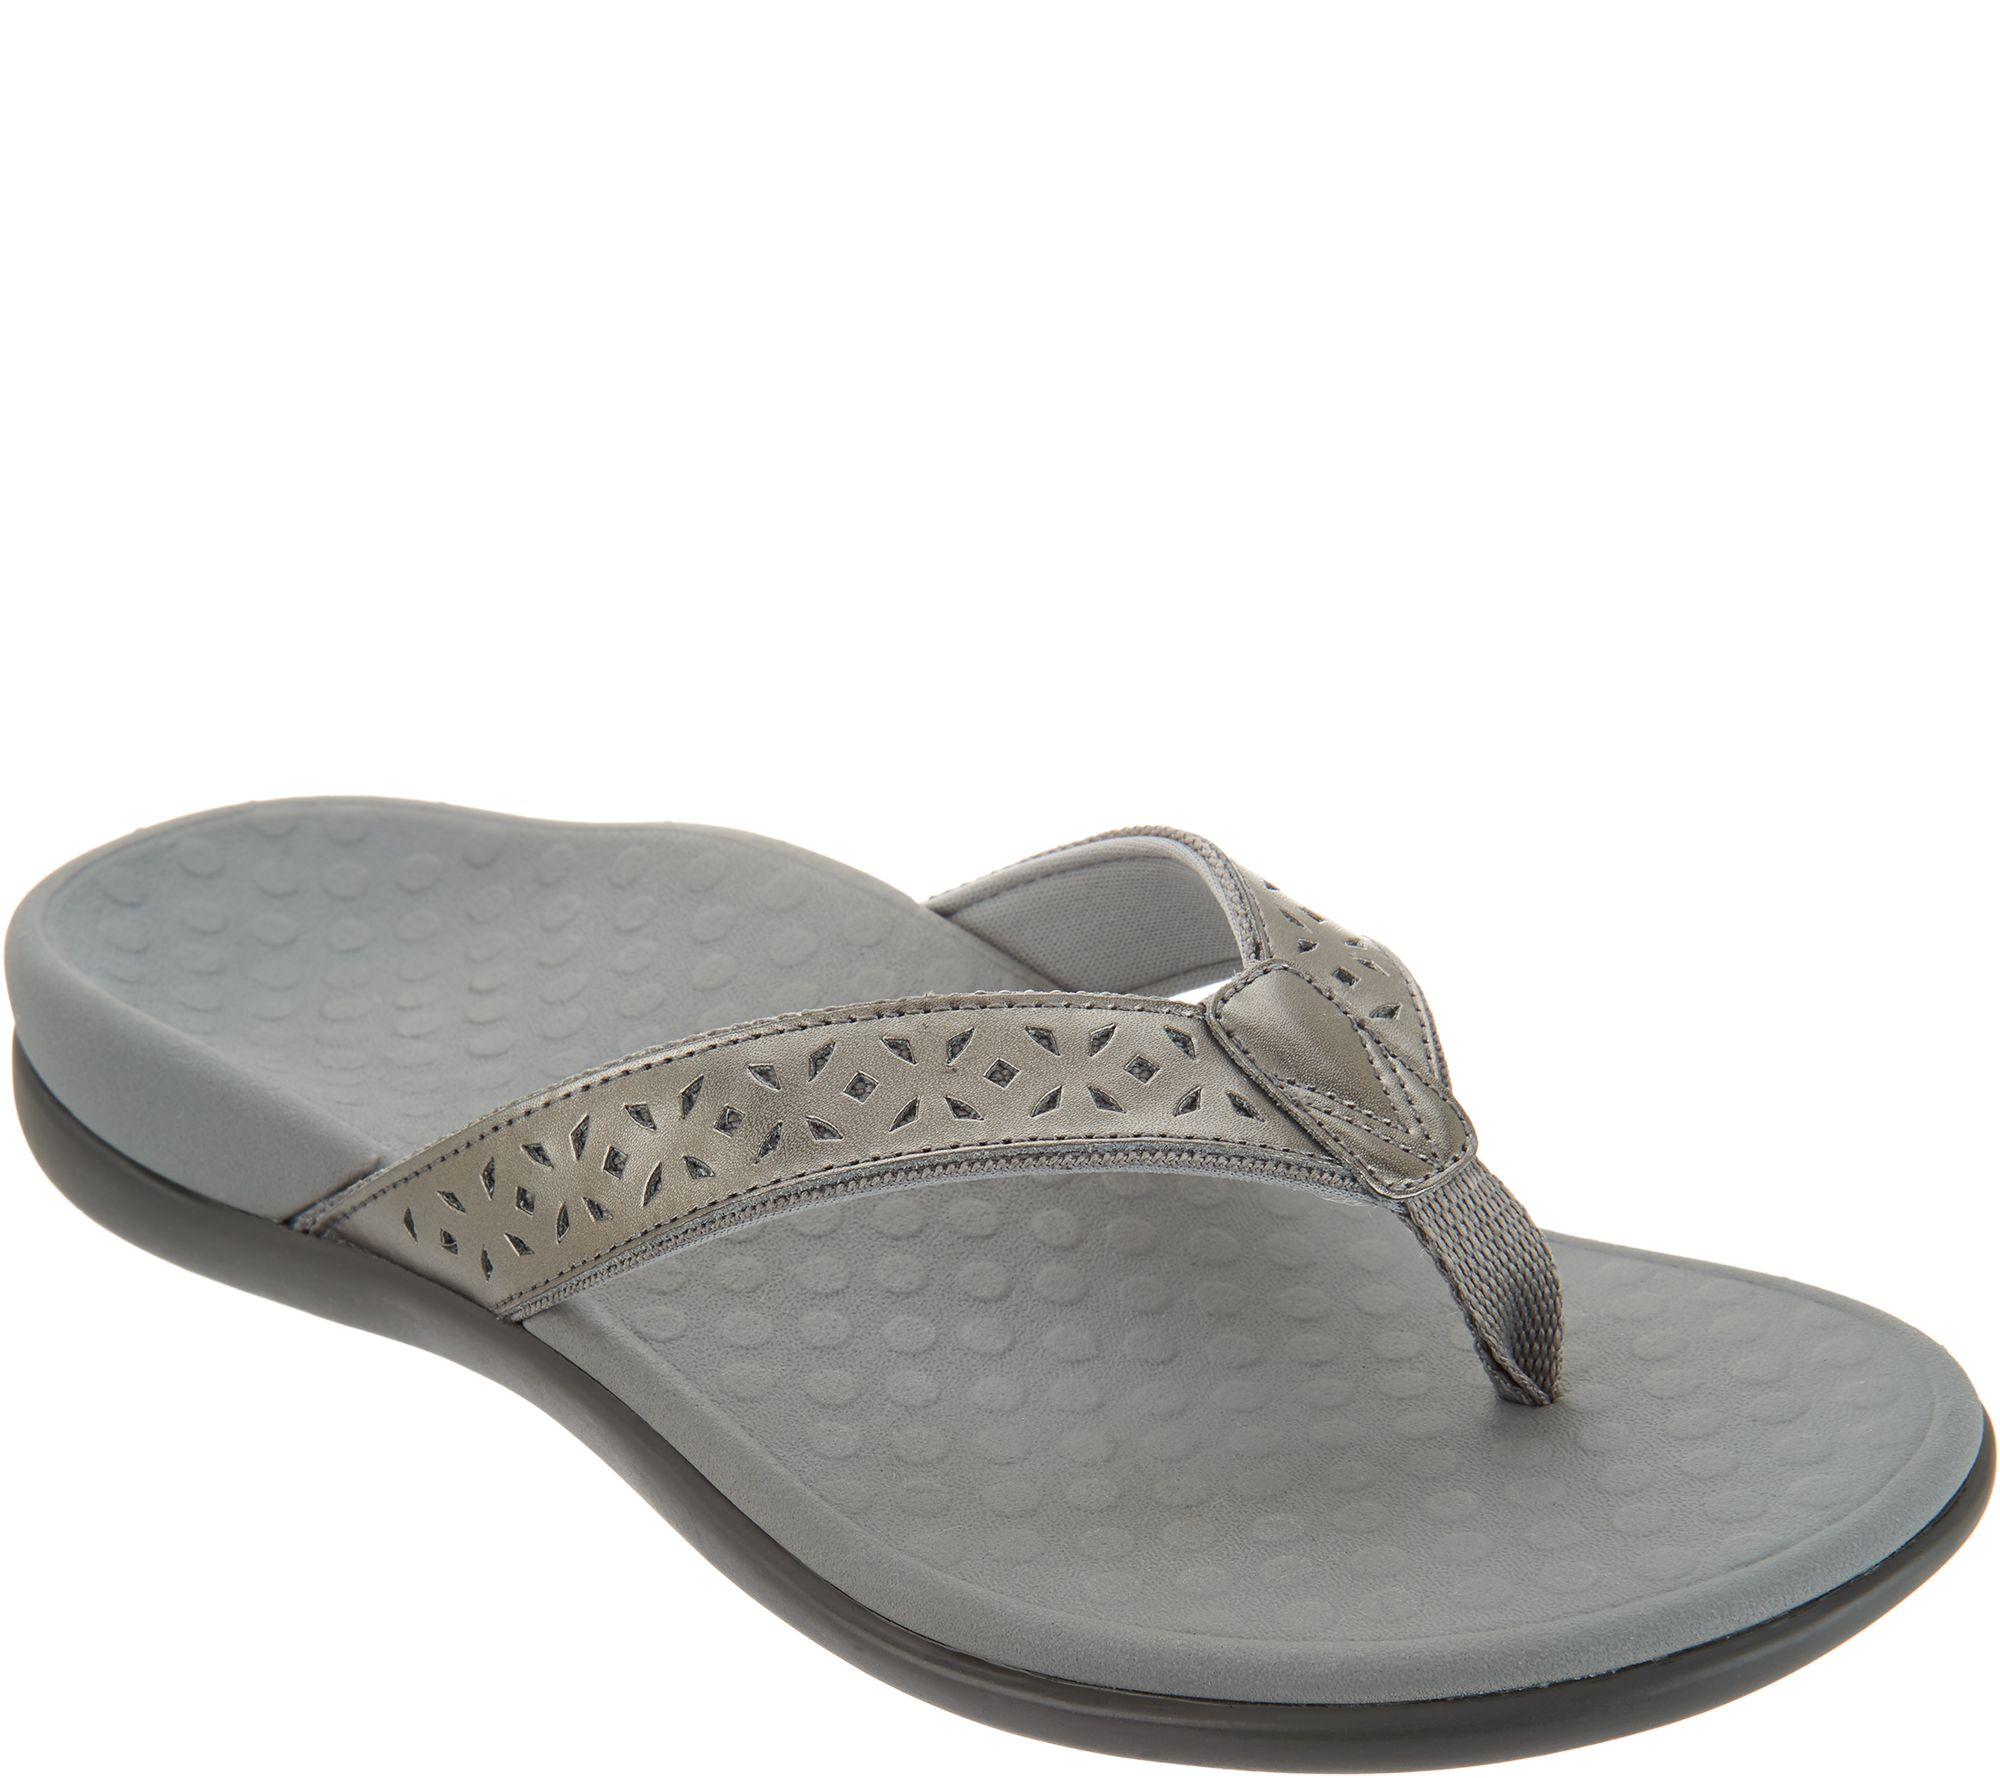 9ed991b1b92256 Vionic Leather Thong Sandals - Tide Anniversary - Page 1 — QVC.com